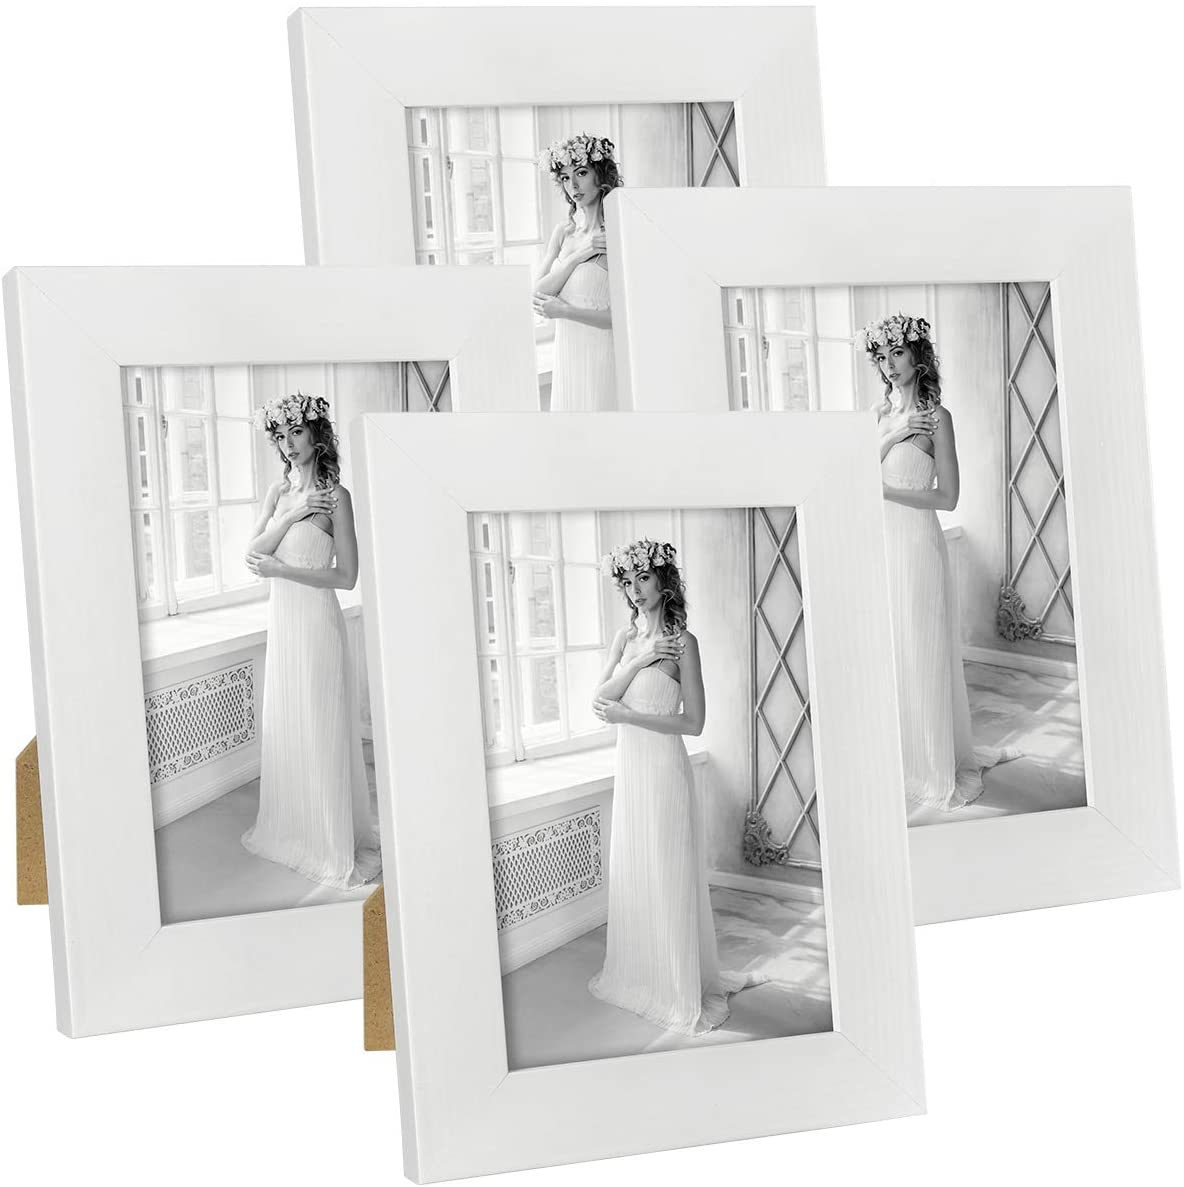 Hap Tim 4x6 Picture Frame White Wooden Photo Frames for Tabletop Display and Wall Decoration, Set of 4 (CWH007-4x6-WT)